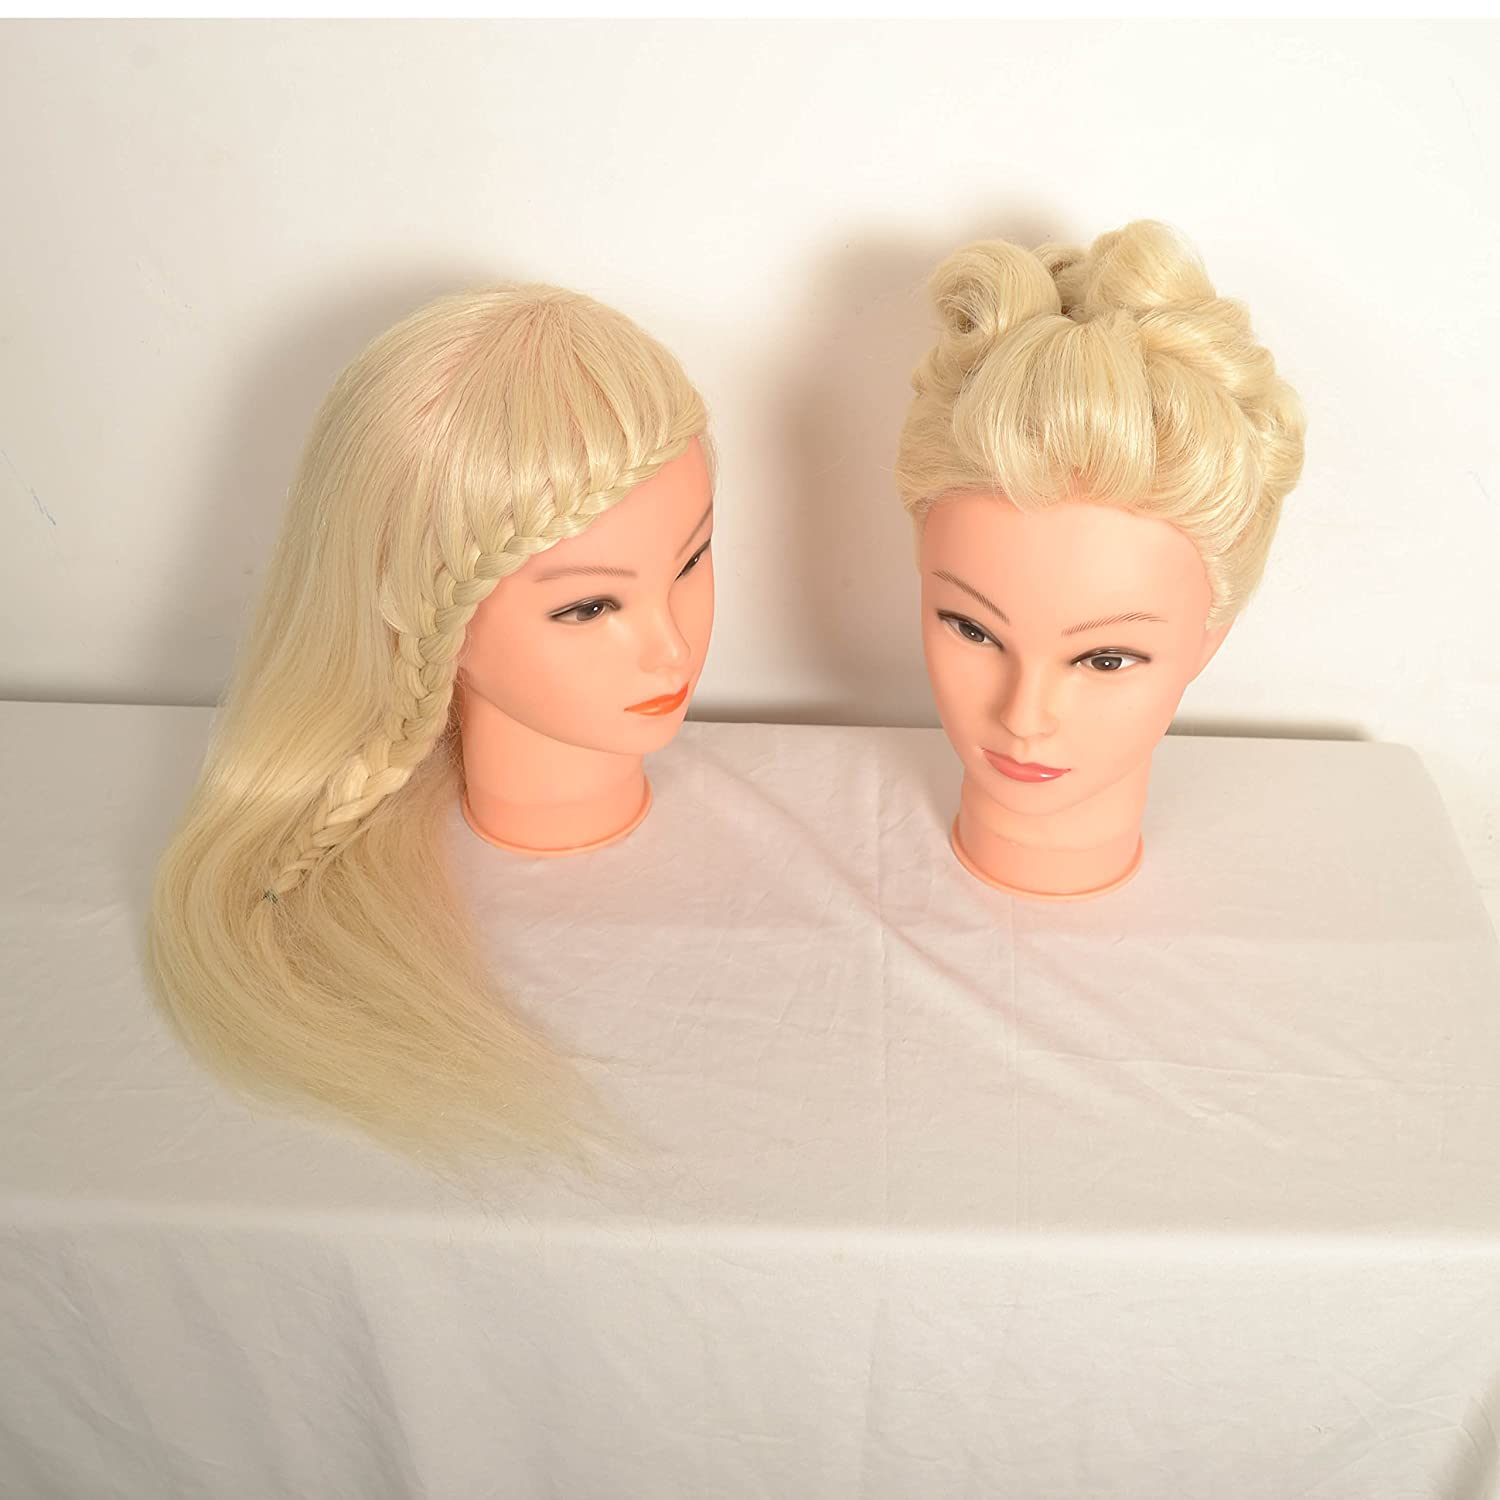 (Li 613) styling Head Doll Kits,cosmetology Mannequin Heads Training Practice Styling Cutting Mannequin Head+clamp elite